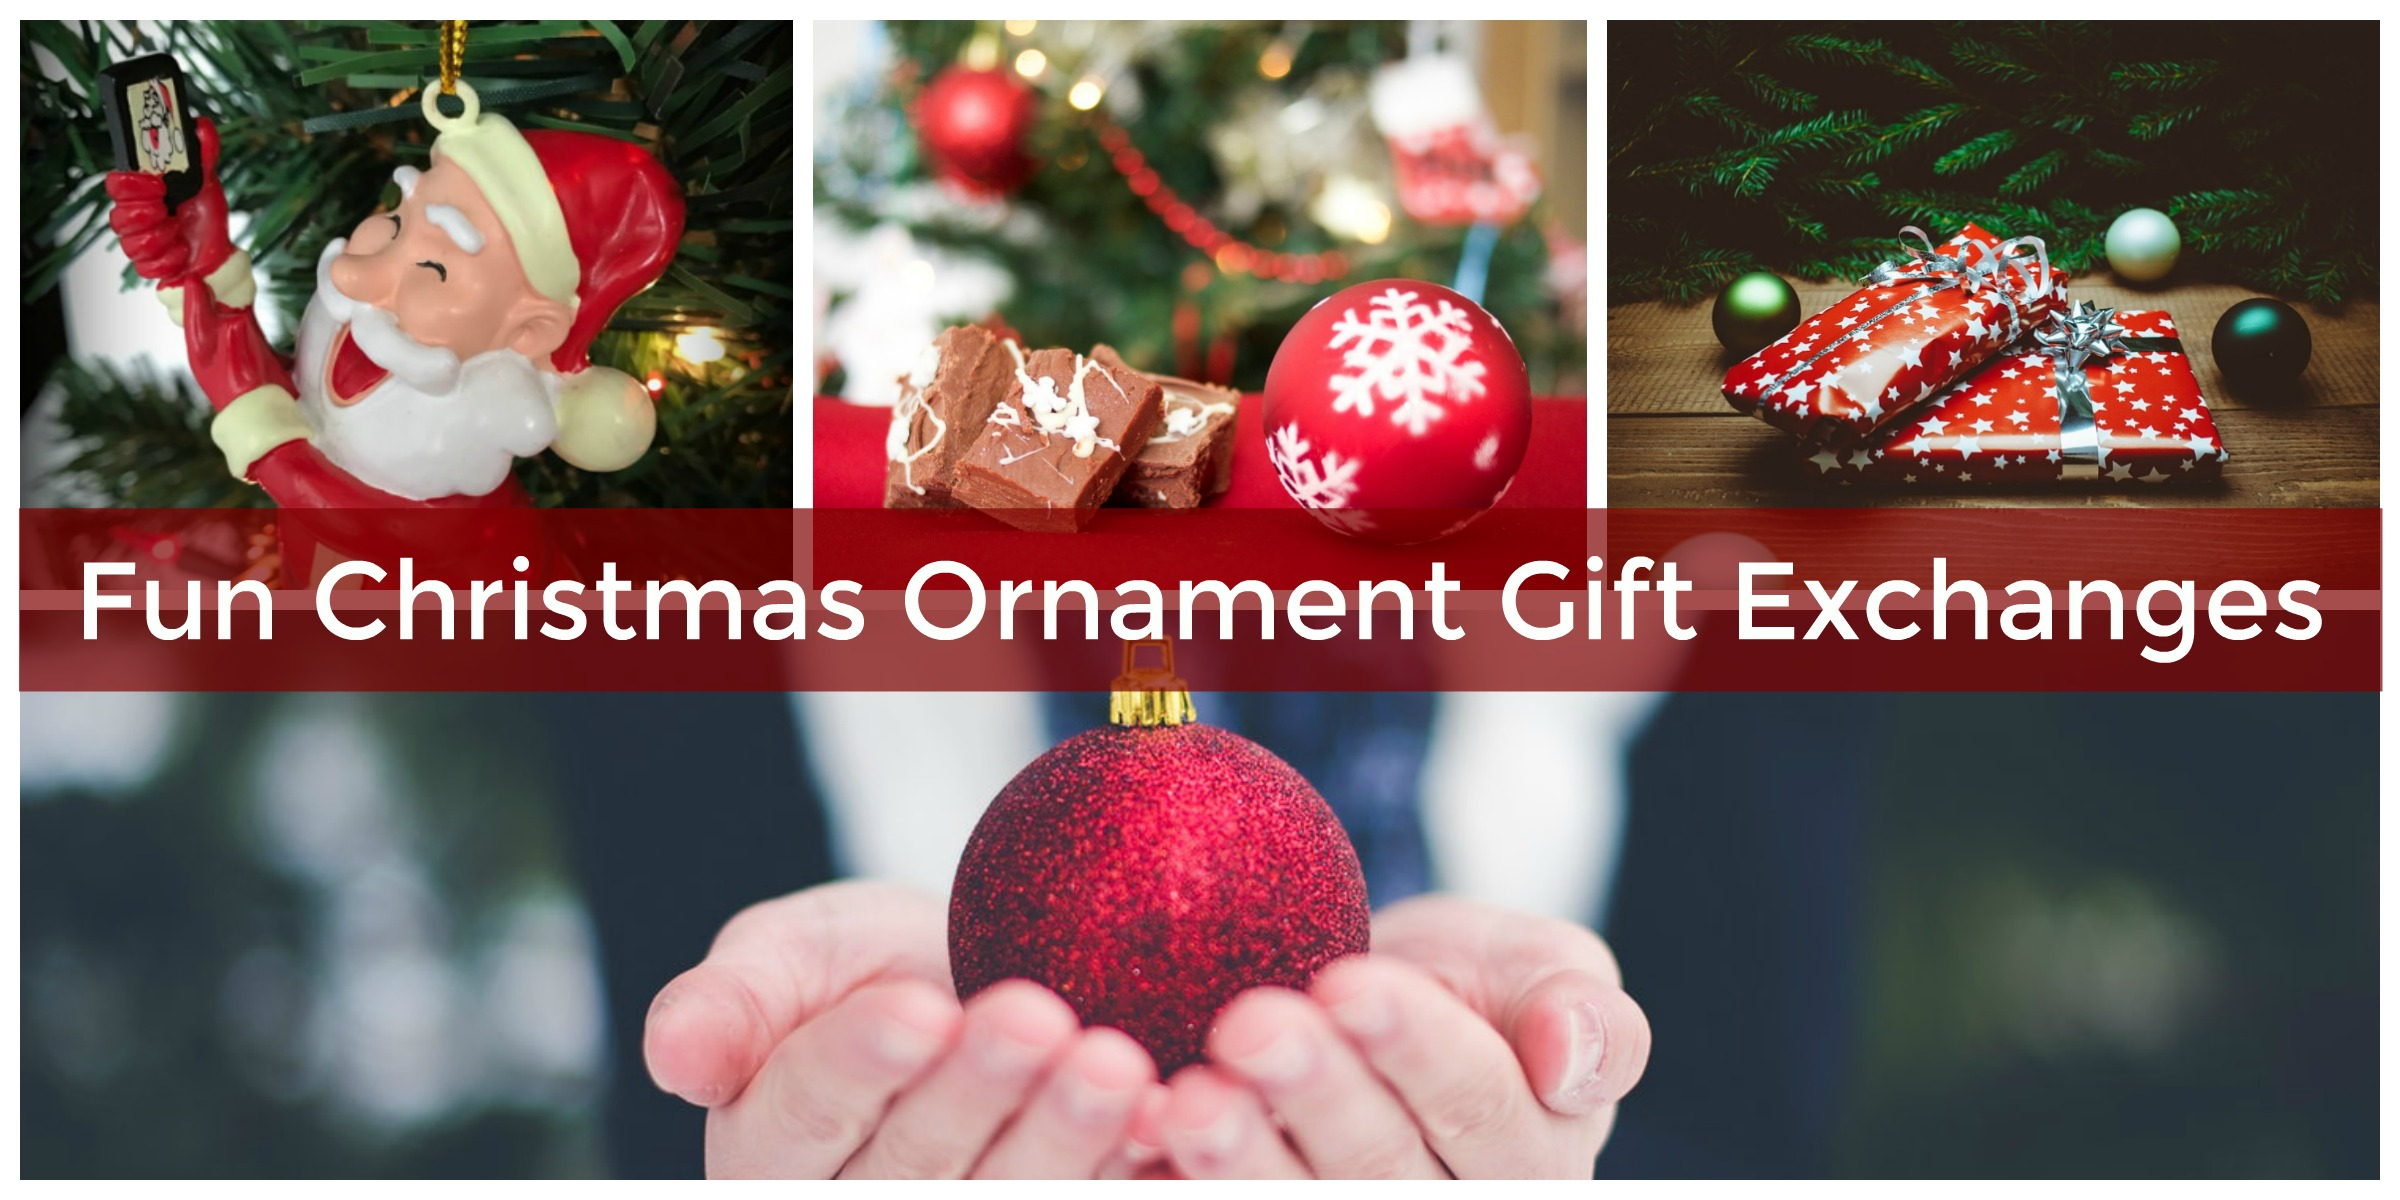 How to Throw a Festive Christmas Ornament Gift Exchange Game Party